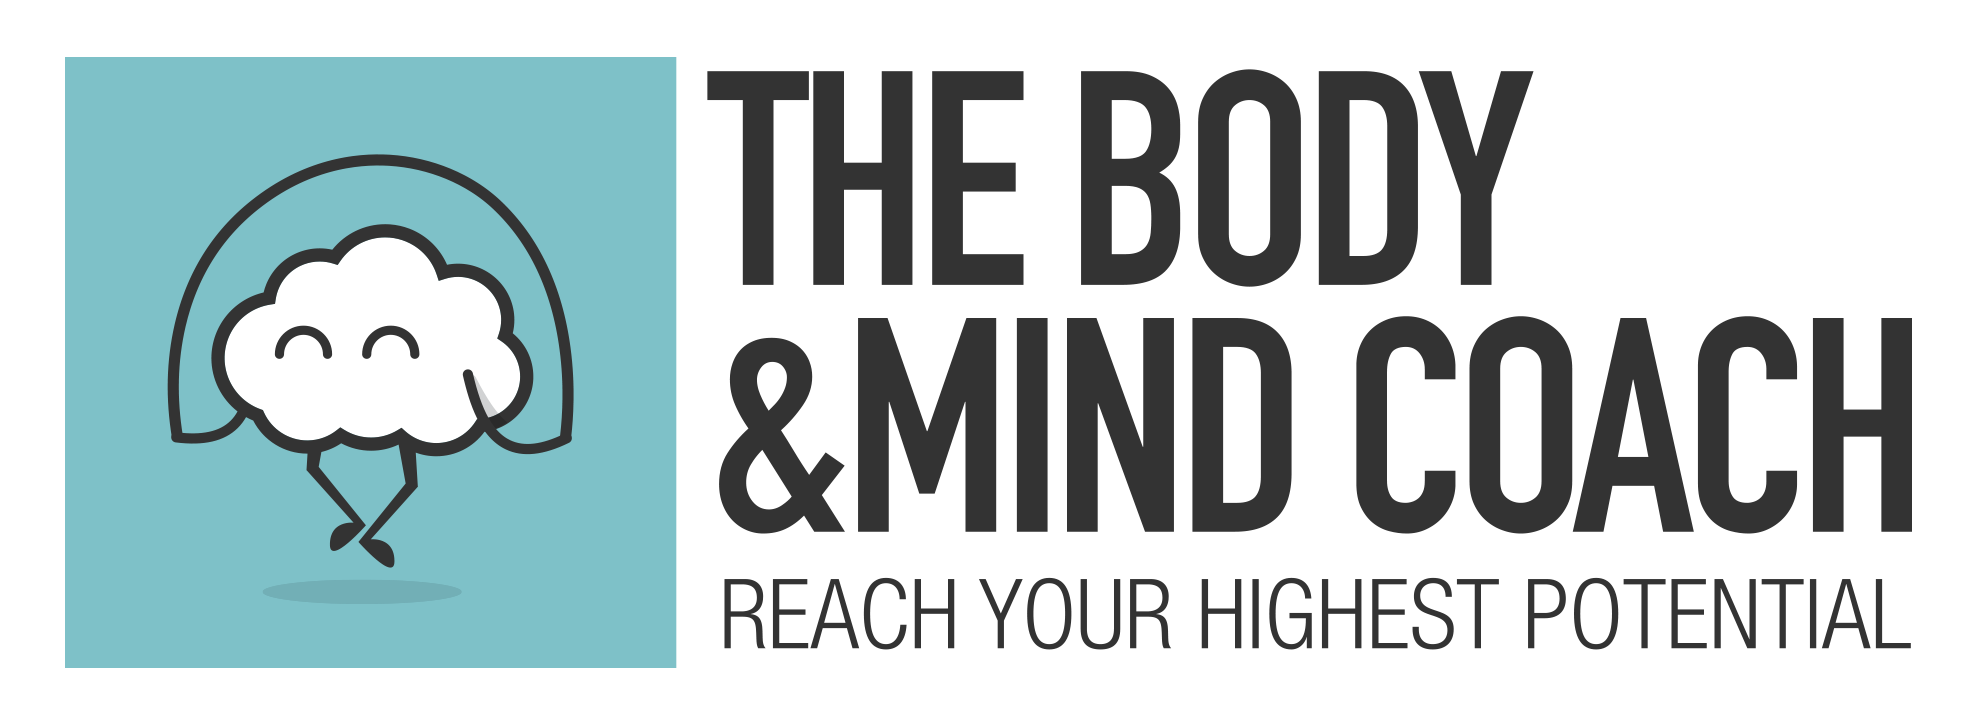 The body and mind coach logo